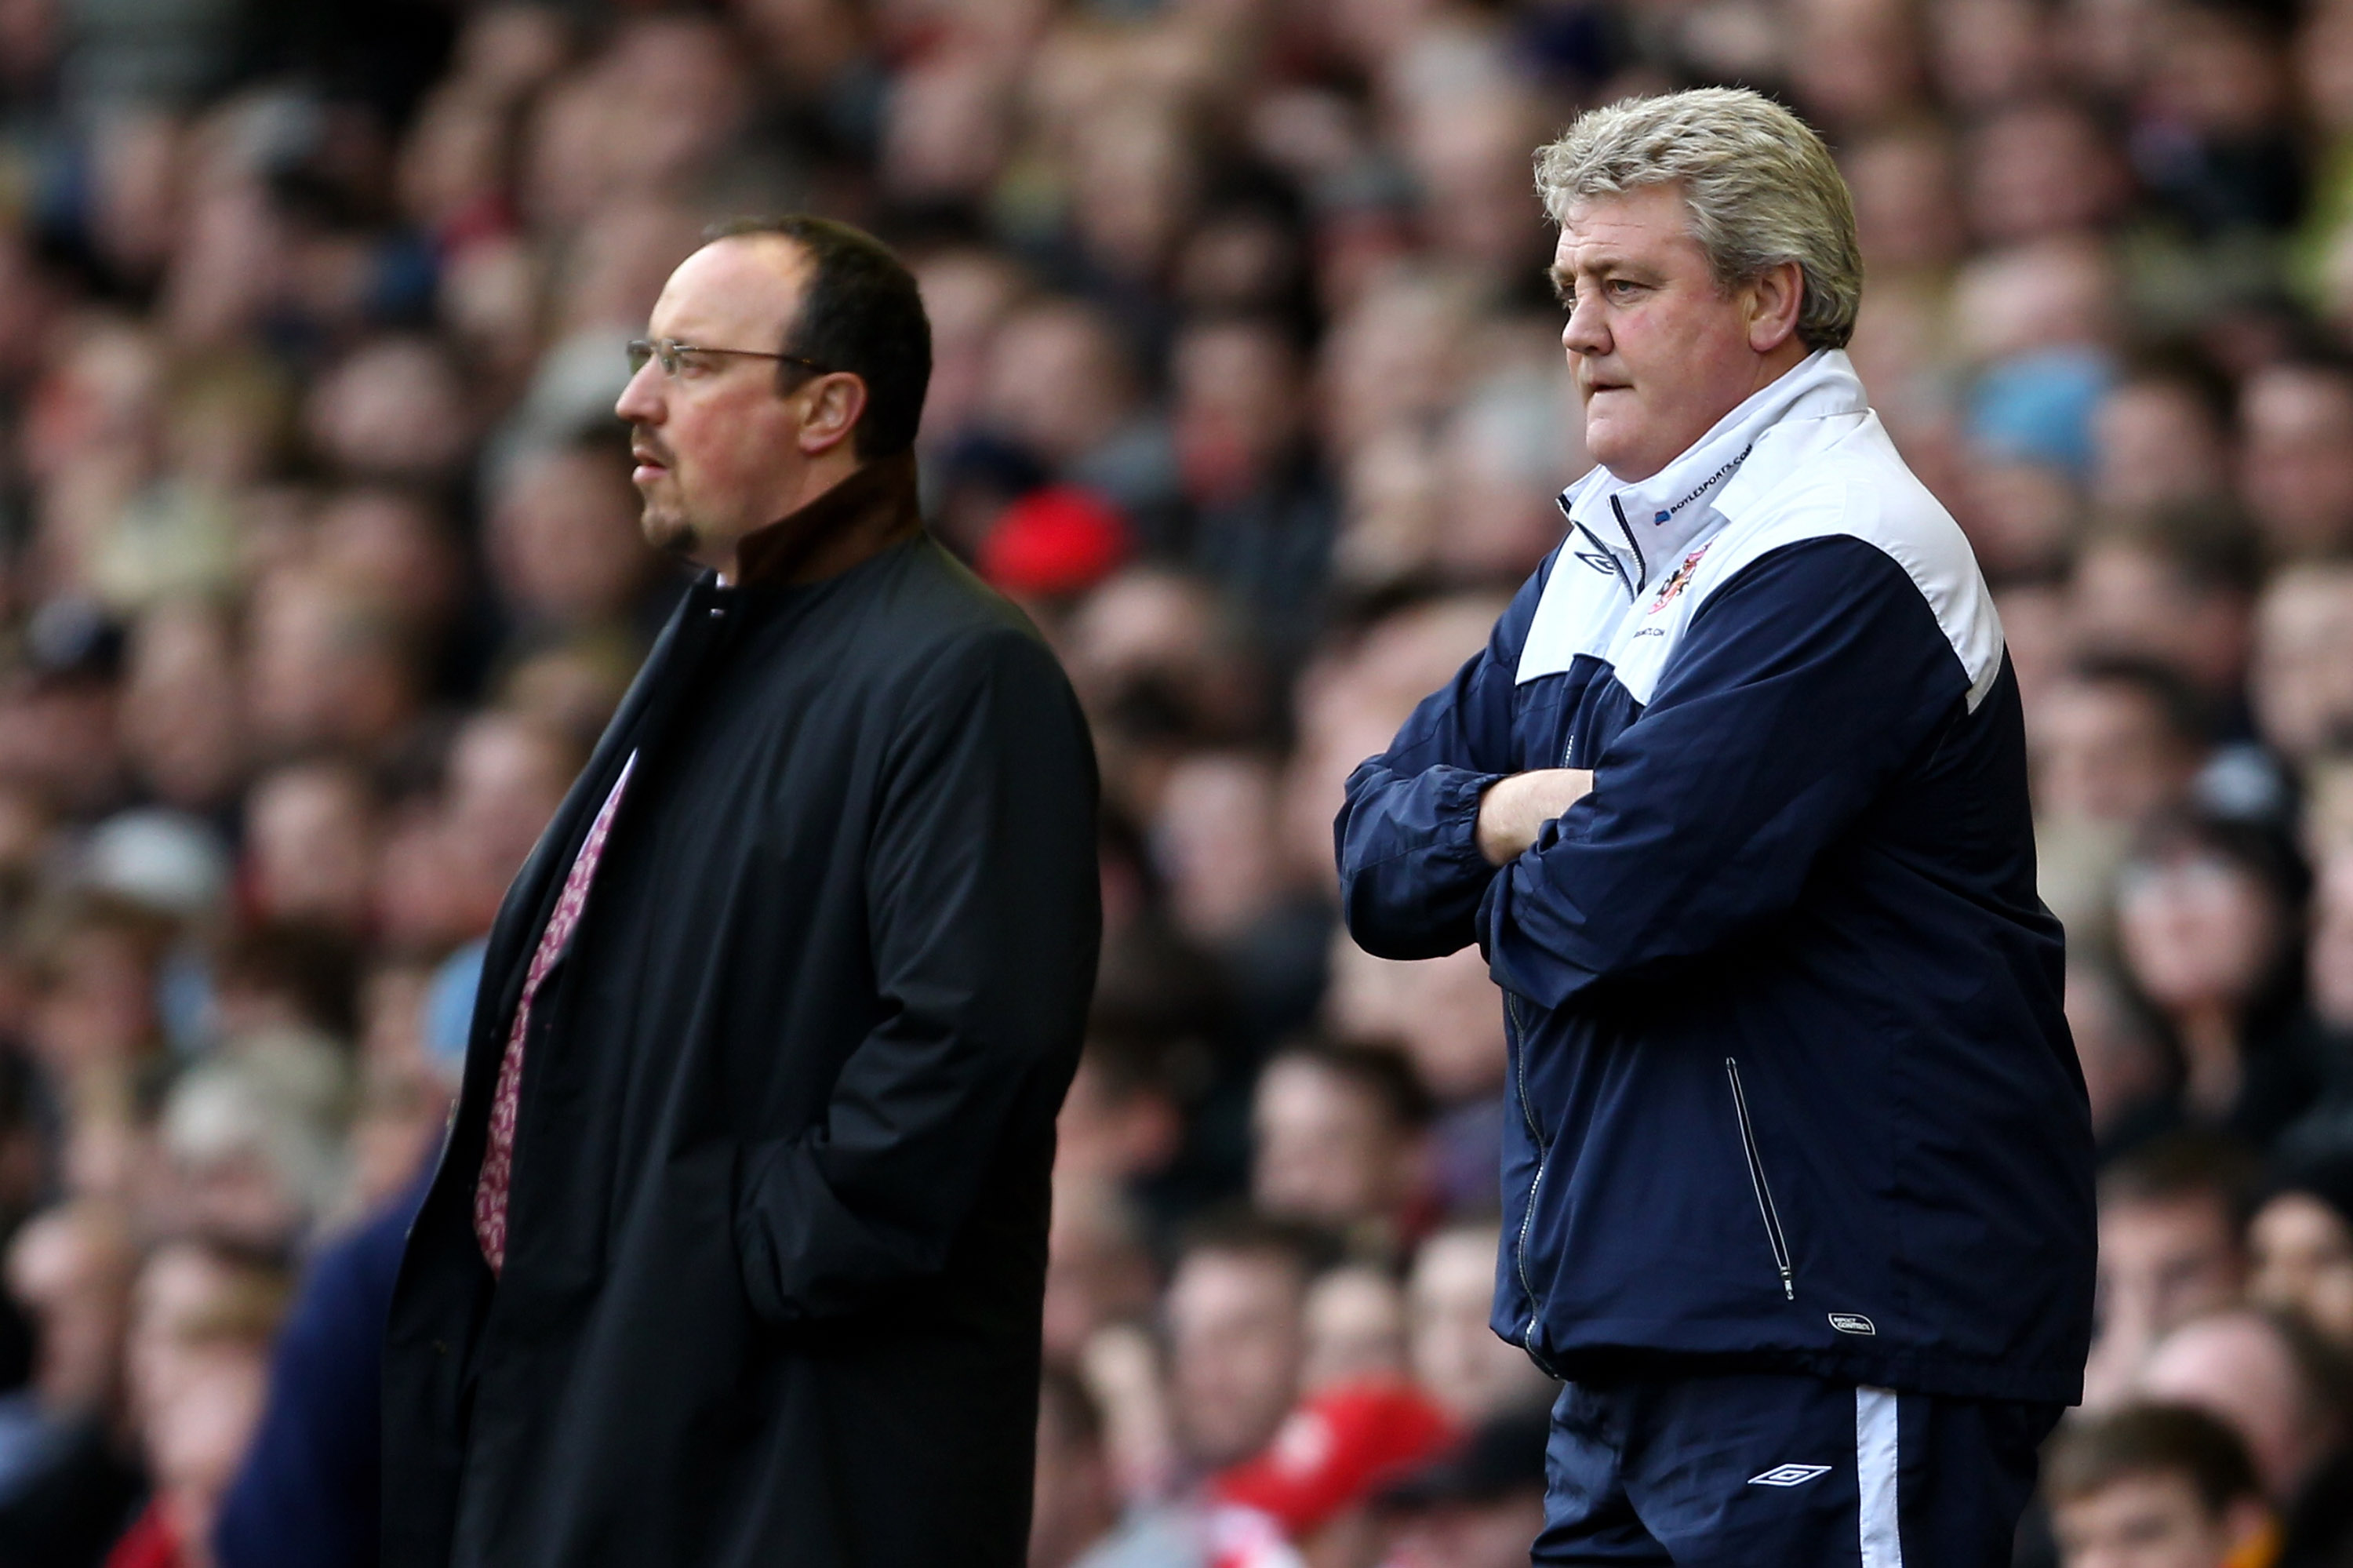 Steve Bruce has gone head-to-head with Rafa Benitez before but now faces his biggest battle